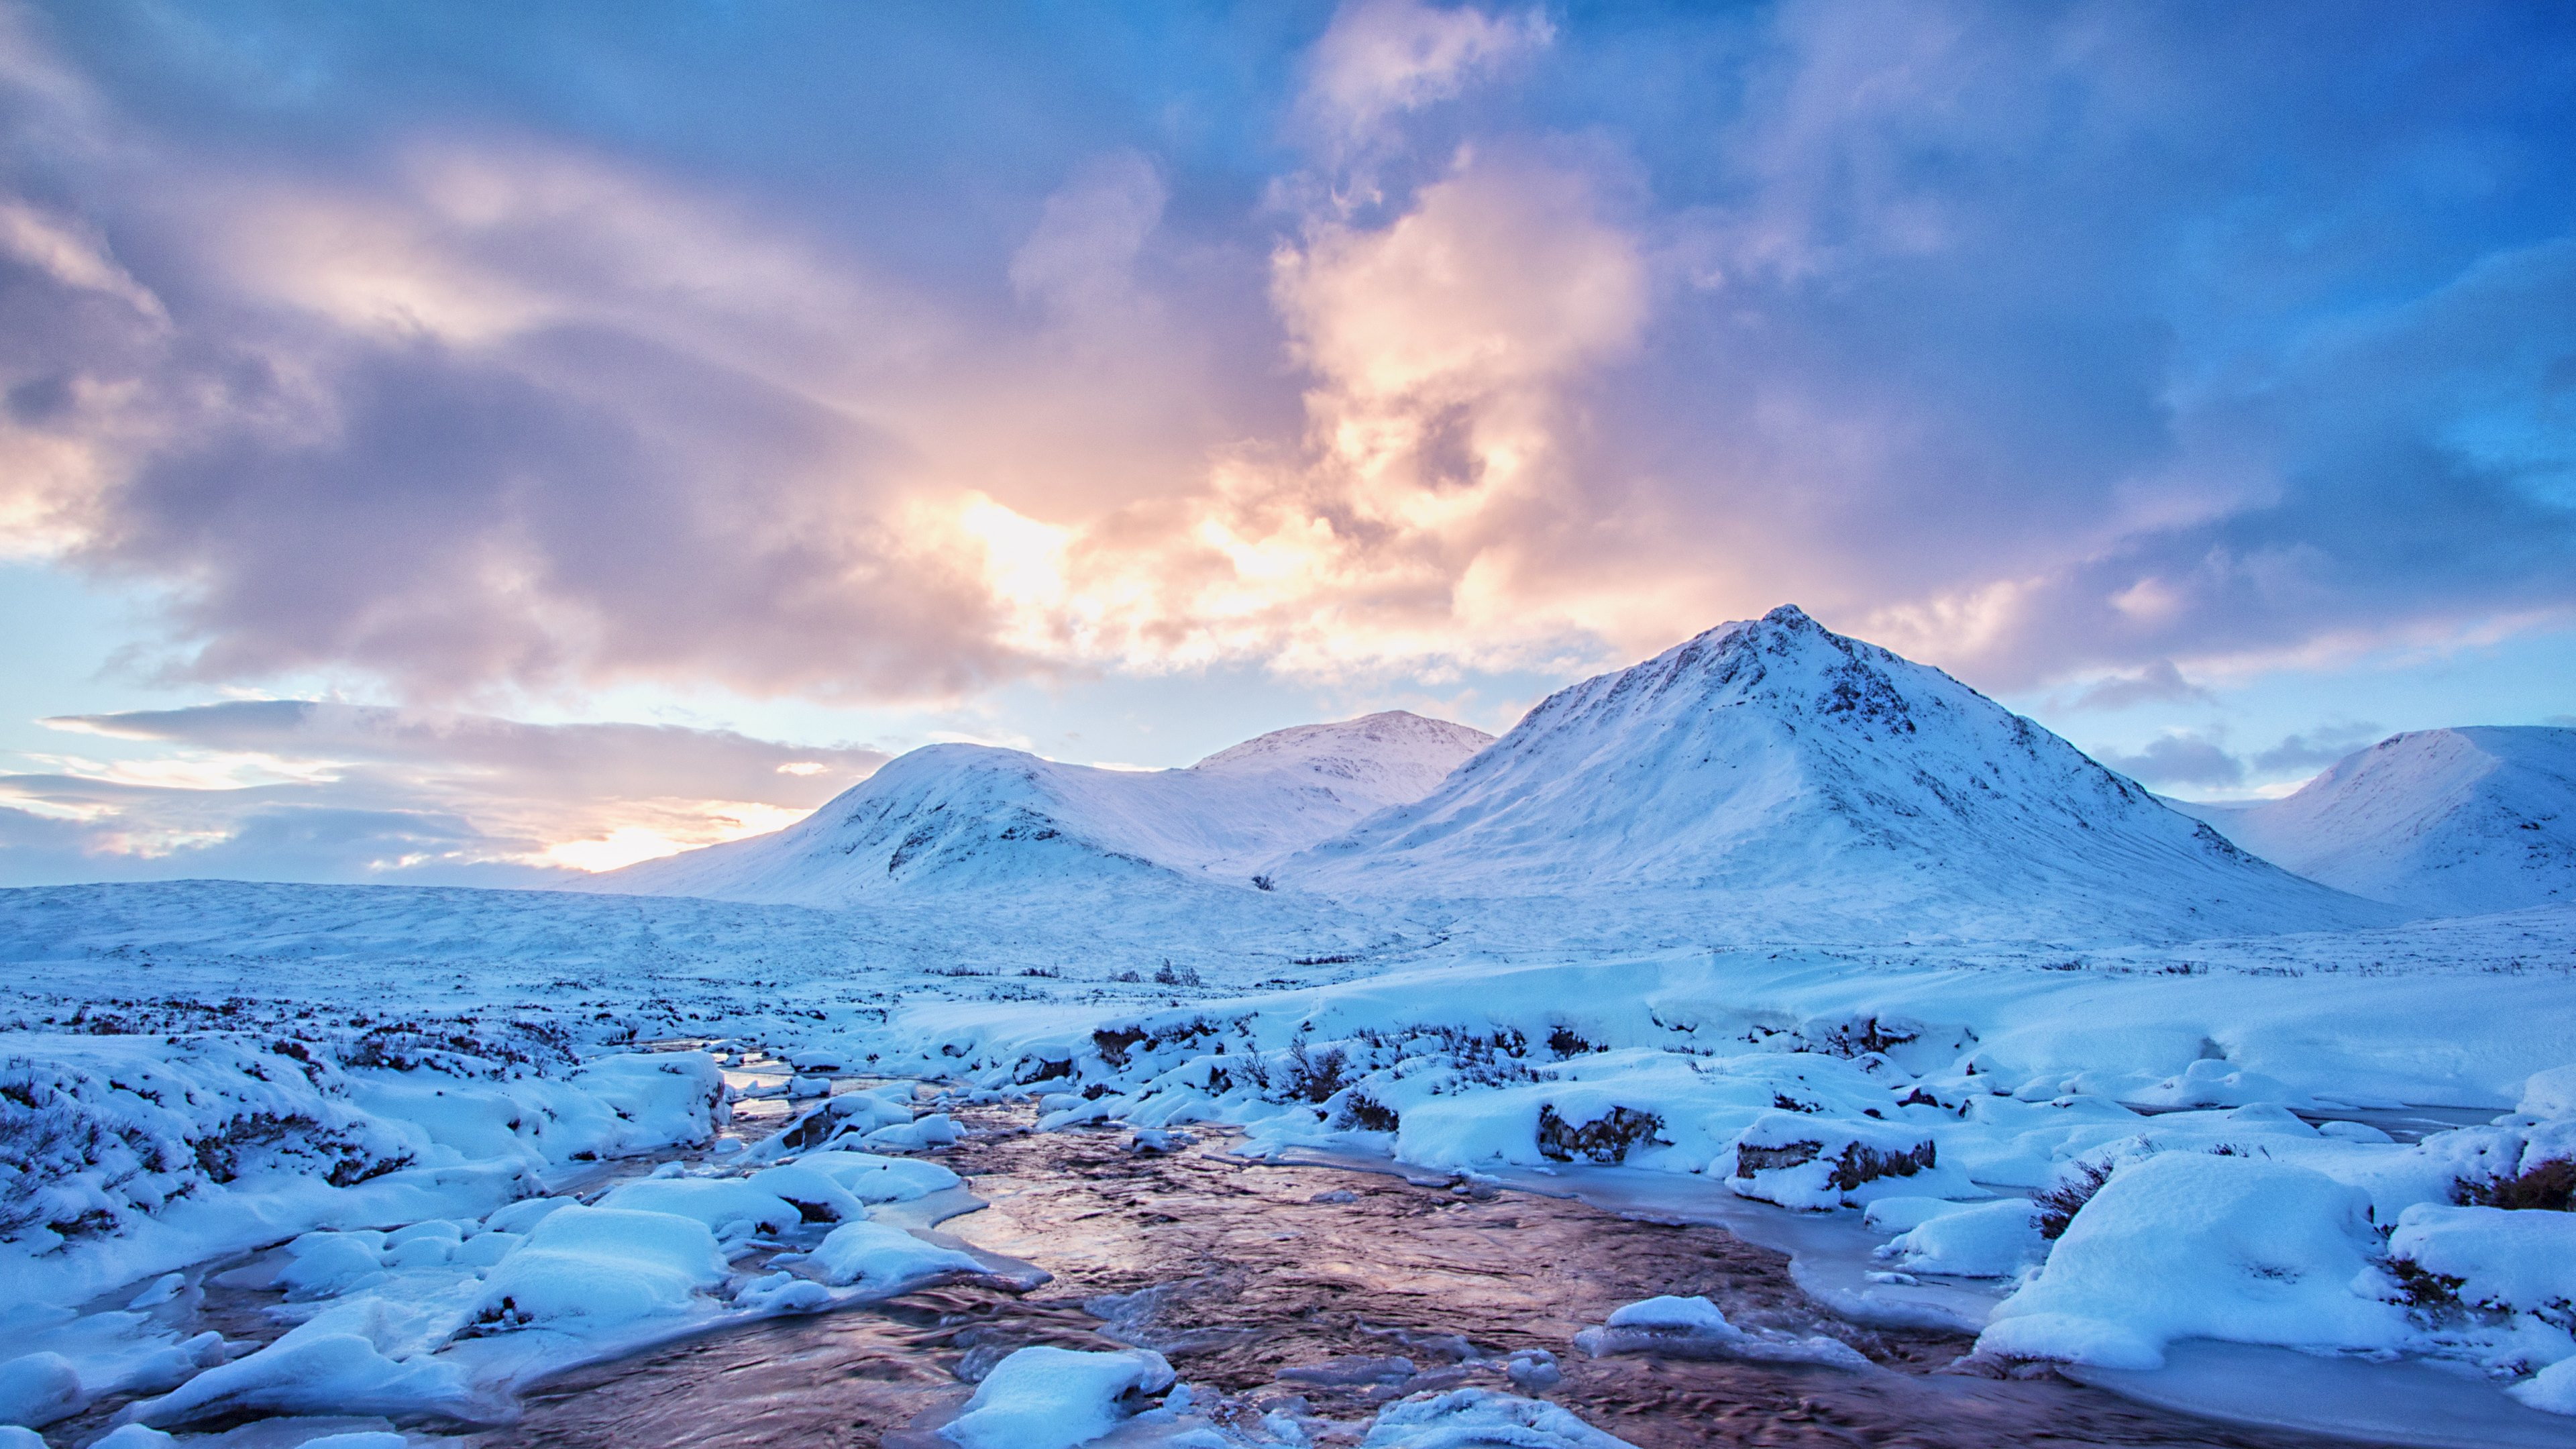 4k Winter Wallpapers High Quality Download Free Vtv Apk 3840x2160 Download Hd Wallpaper Wallpapertip